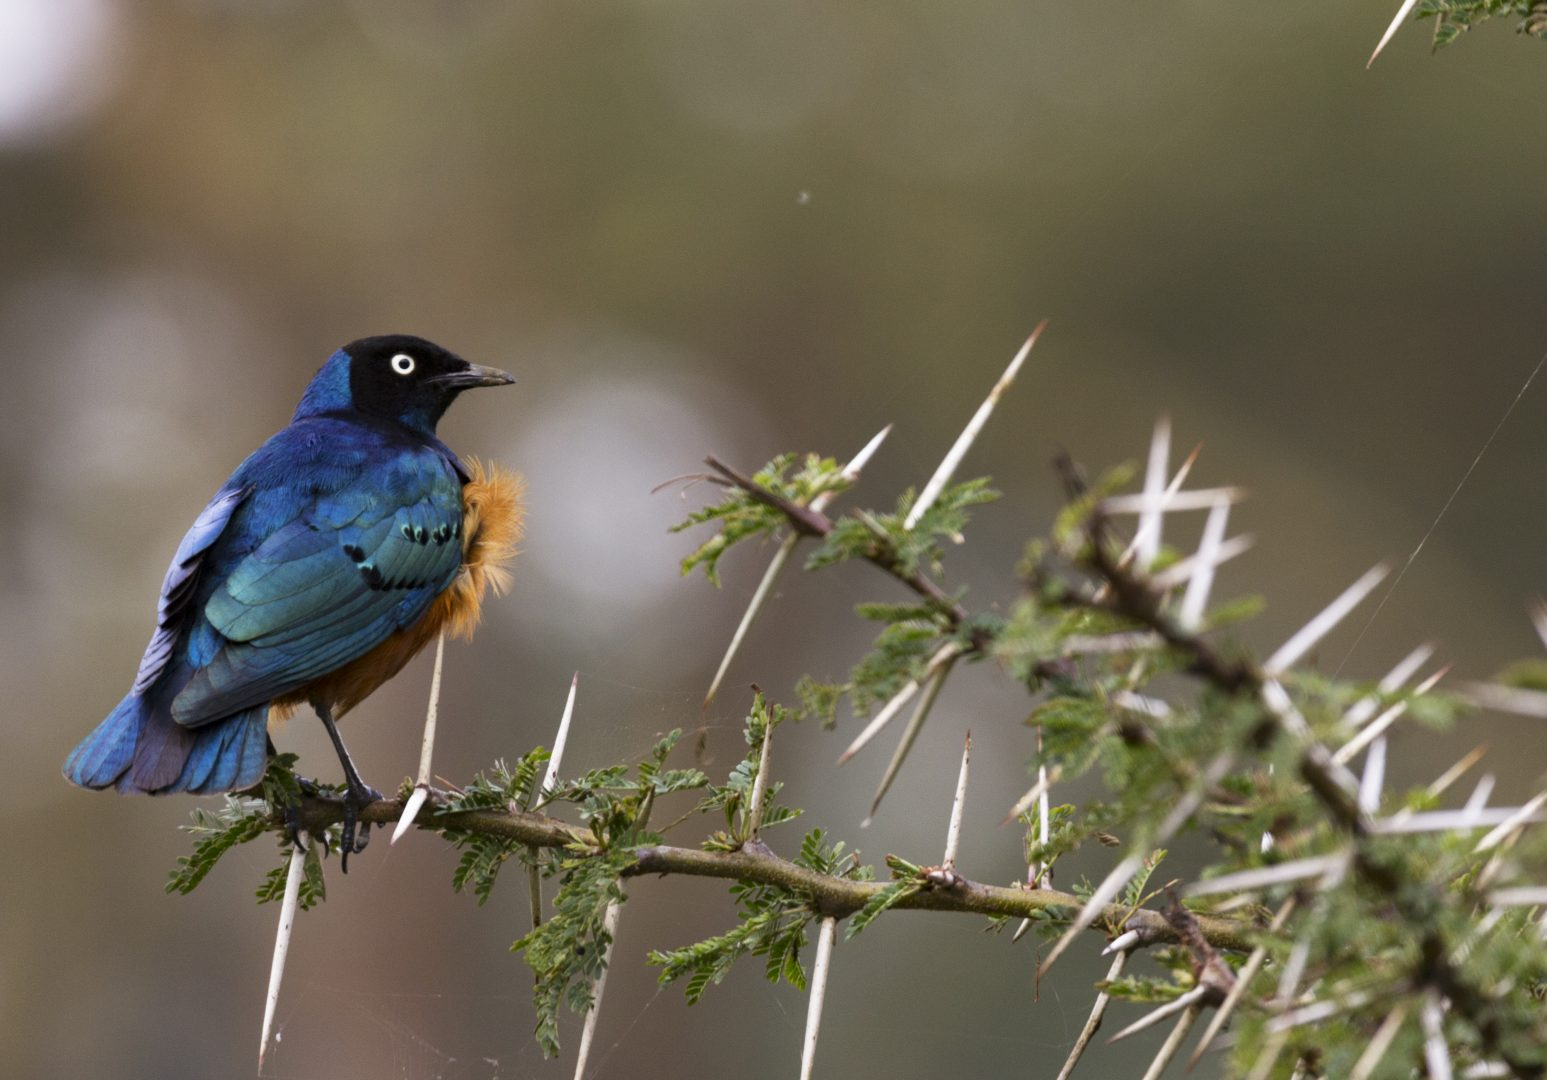 Superb Starling, Naivasha, Kenya.